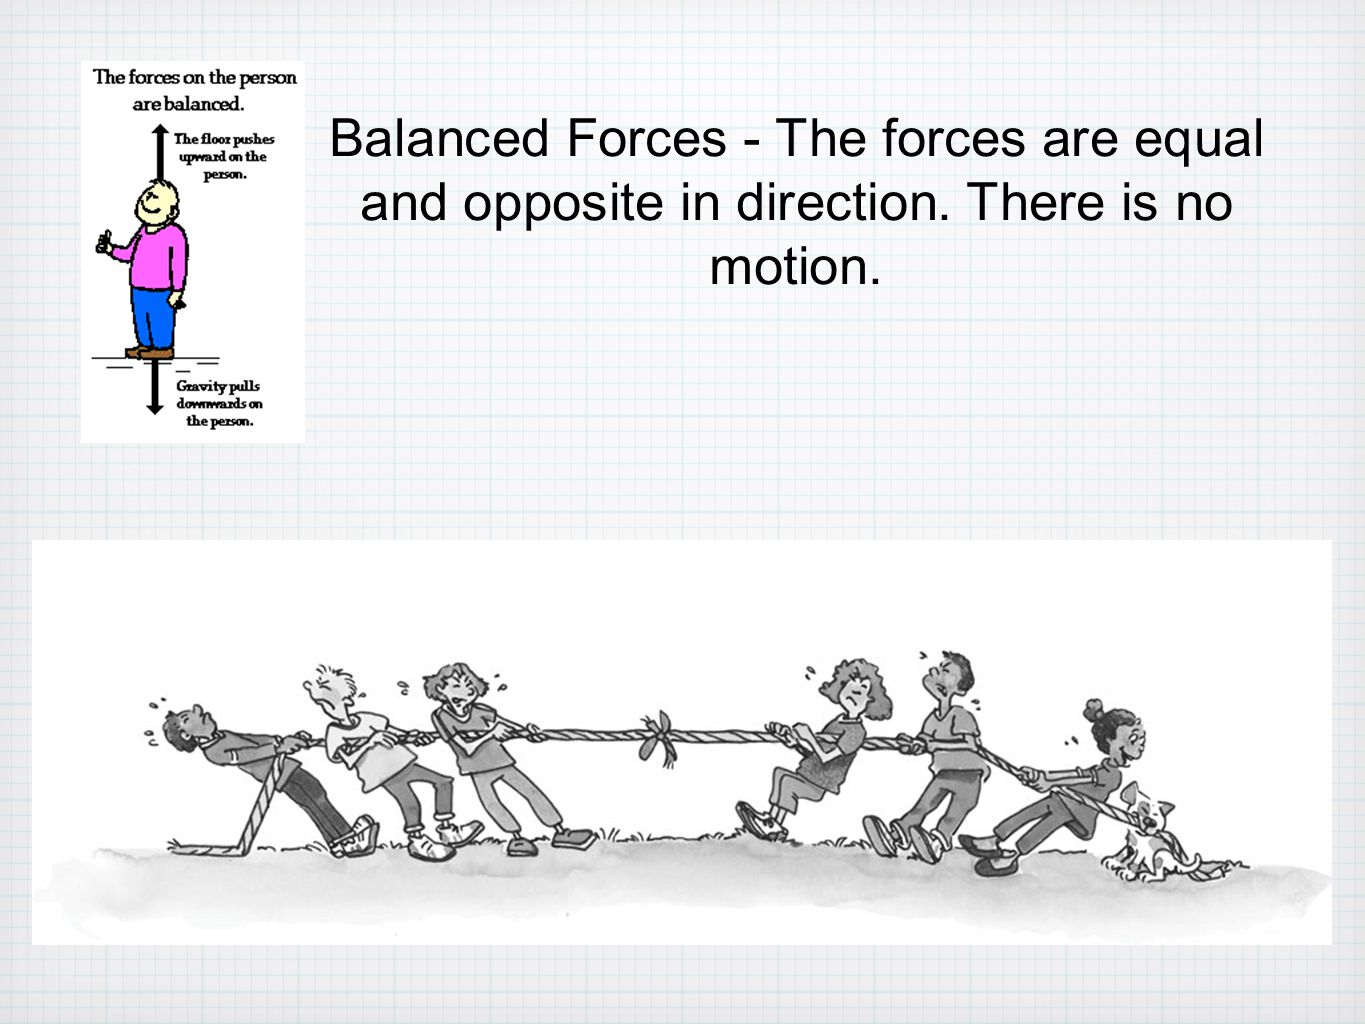 Balanced Forces - The forces are equal and opposite in direction